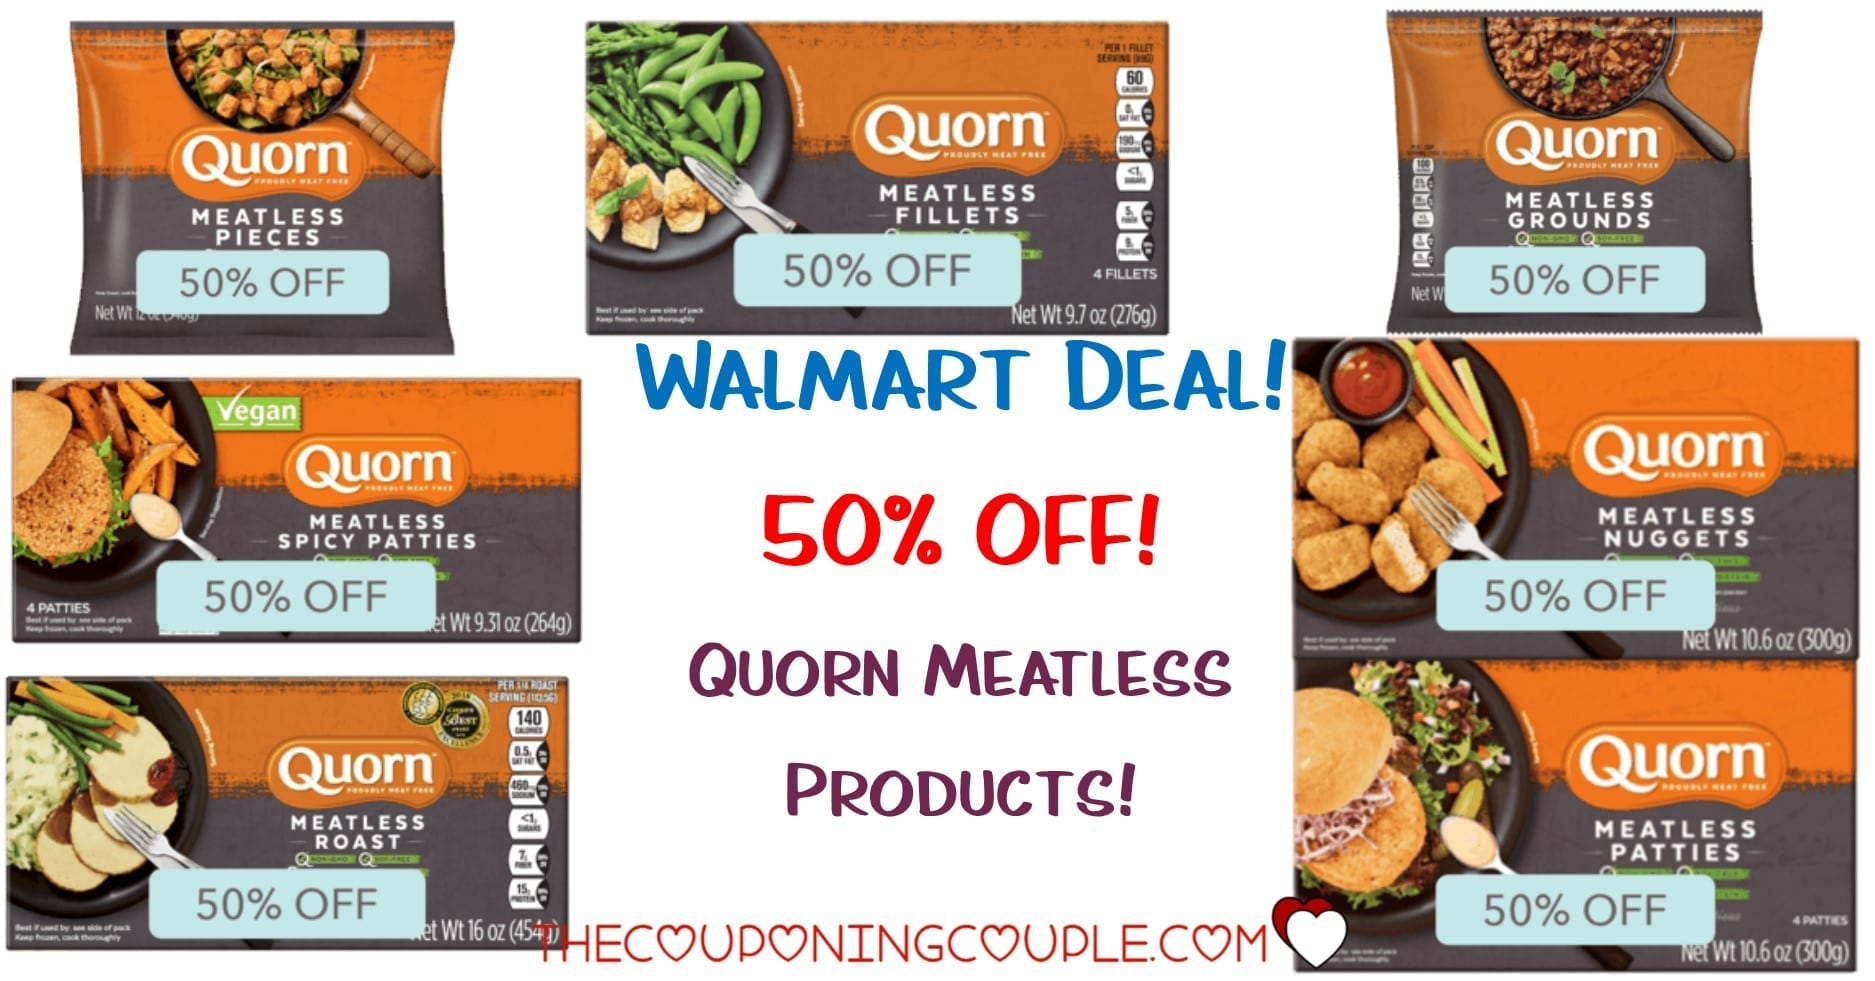 Quorn Meatless Products